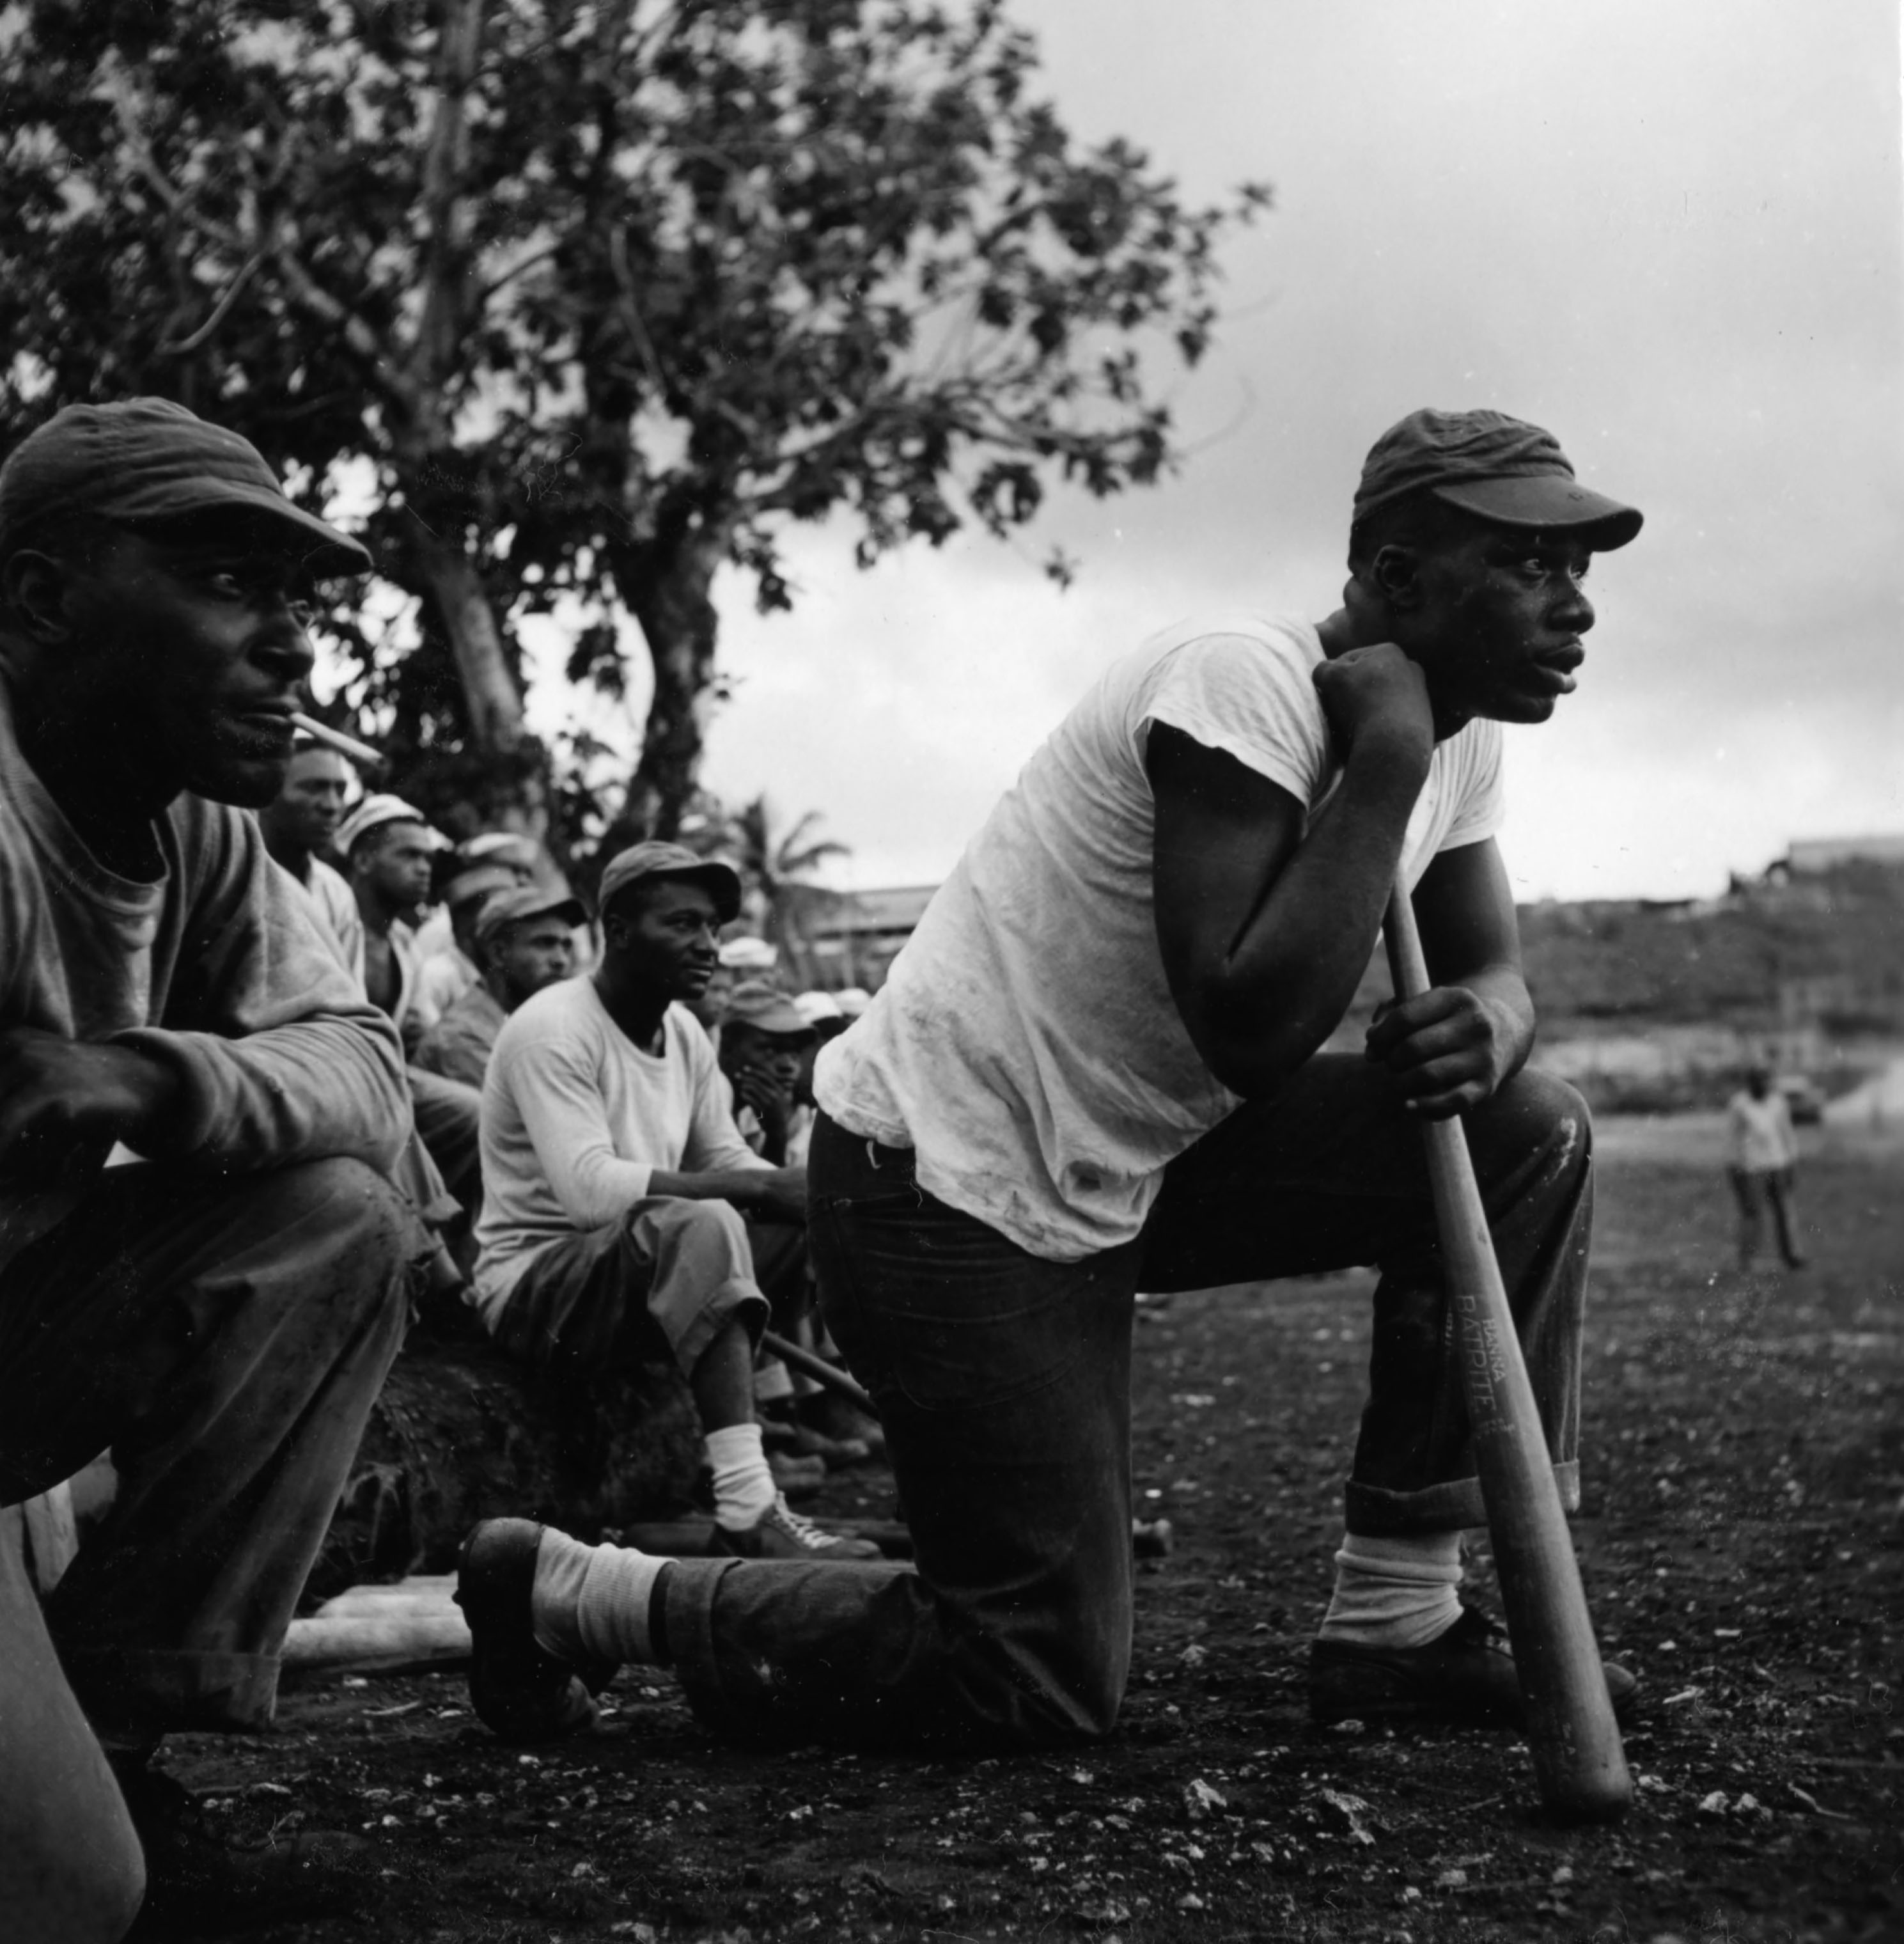 Sailors assigned to work as laborers at the U.S. Naval Supply Depot on Guam playing baseball.